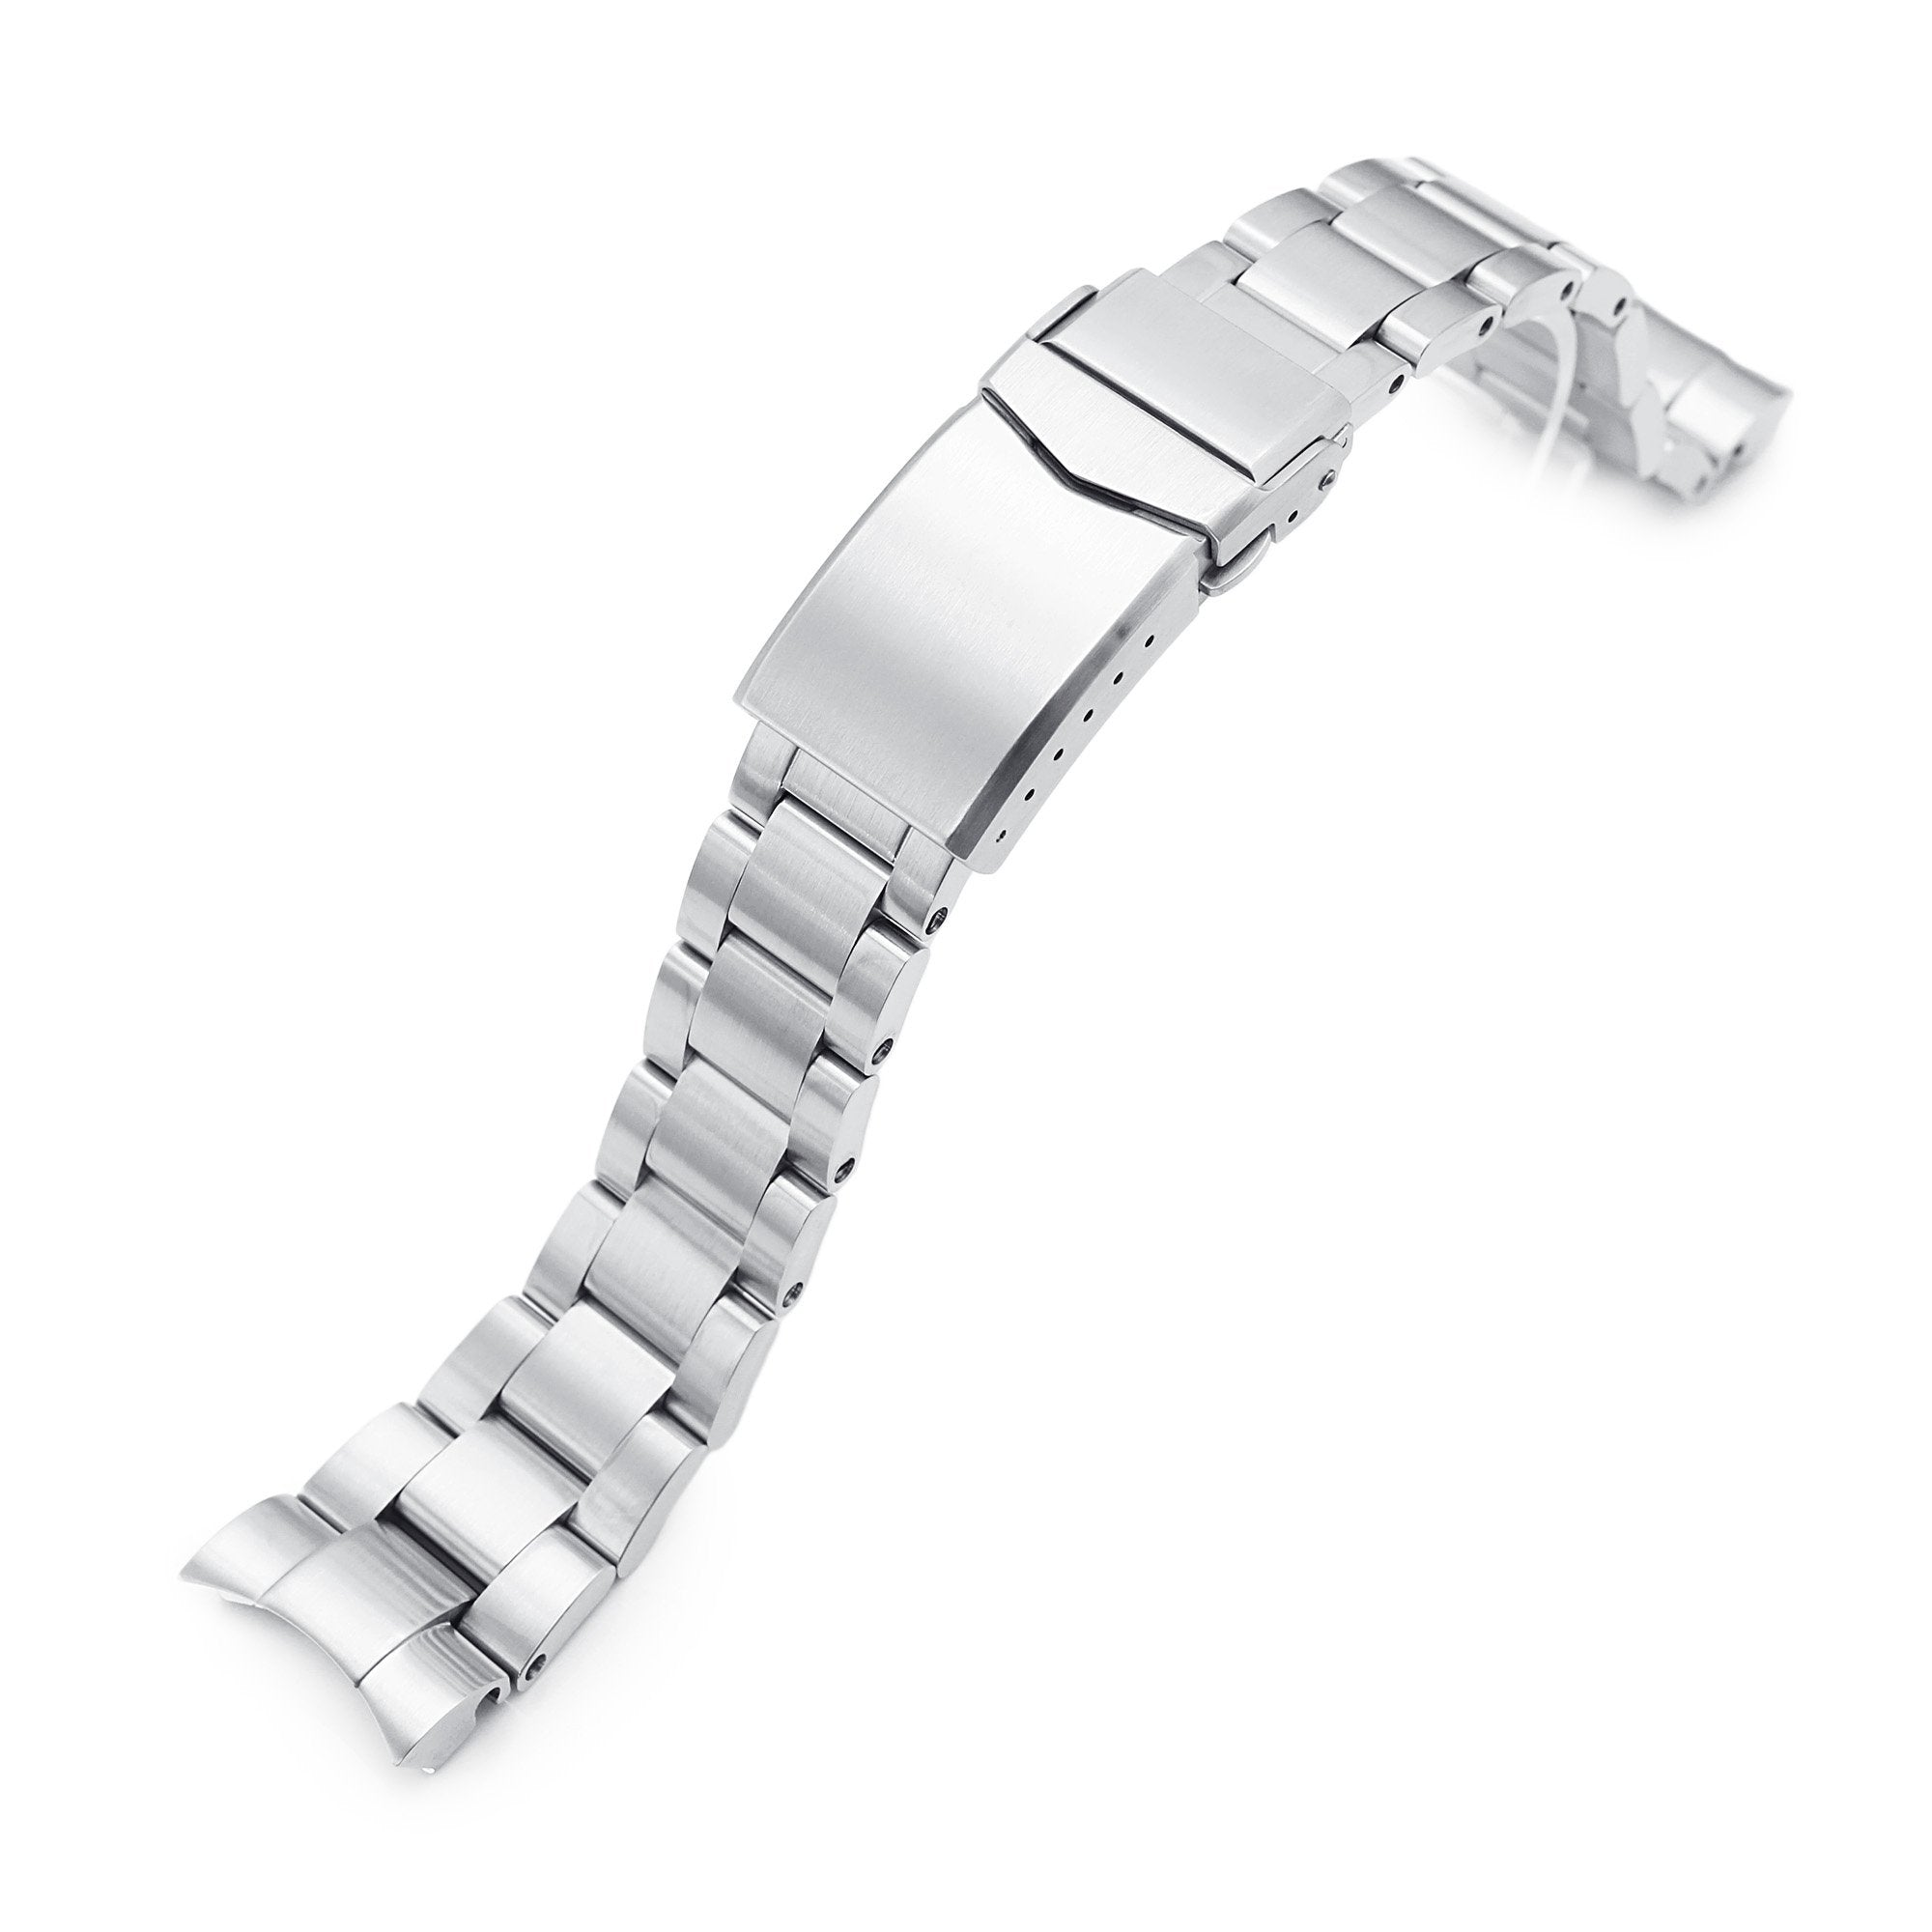 20mm Super-O Boyer 316L Stainless Steel Watch Bracelet for TUD BB58 Brushed V-Clasp Strapcode Watch Bands